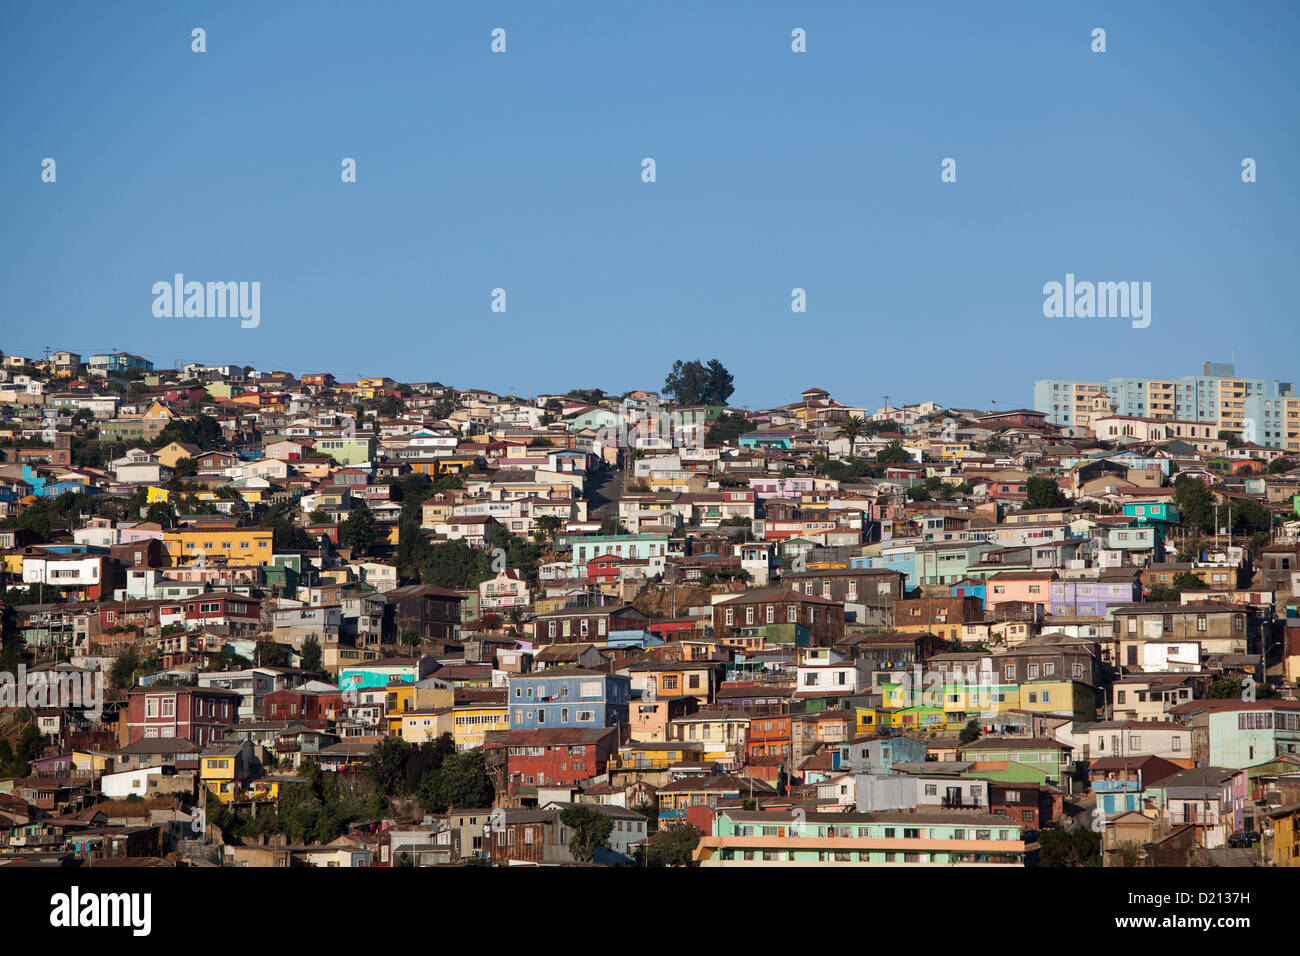 Colorful houses on hillside, Valparaiso, Chile, South America - Stock Image